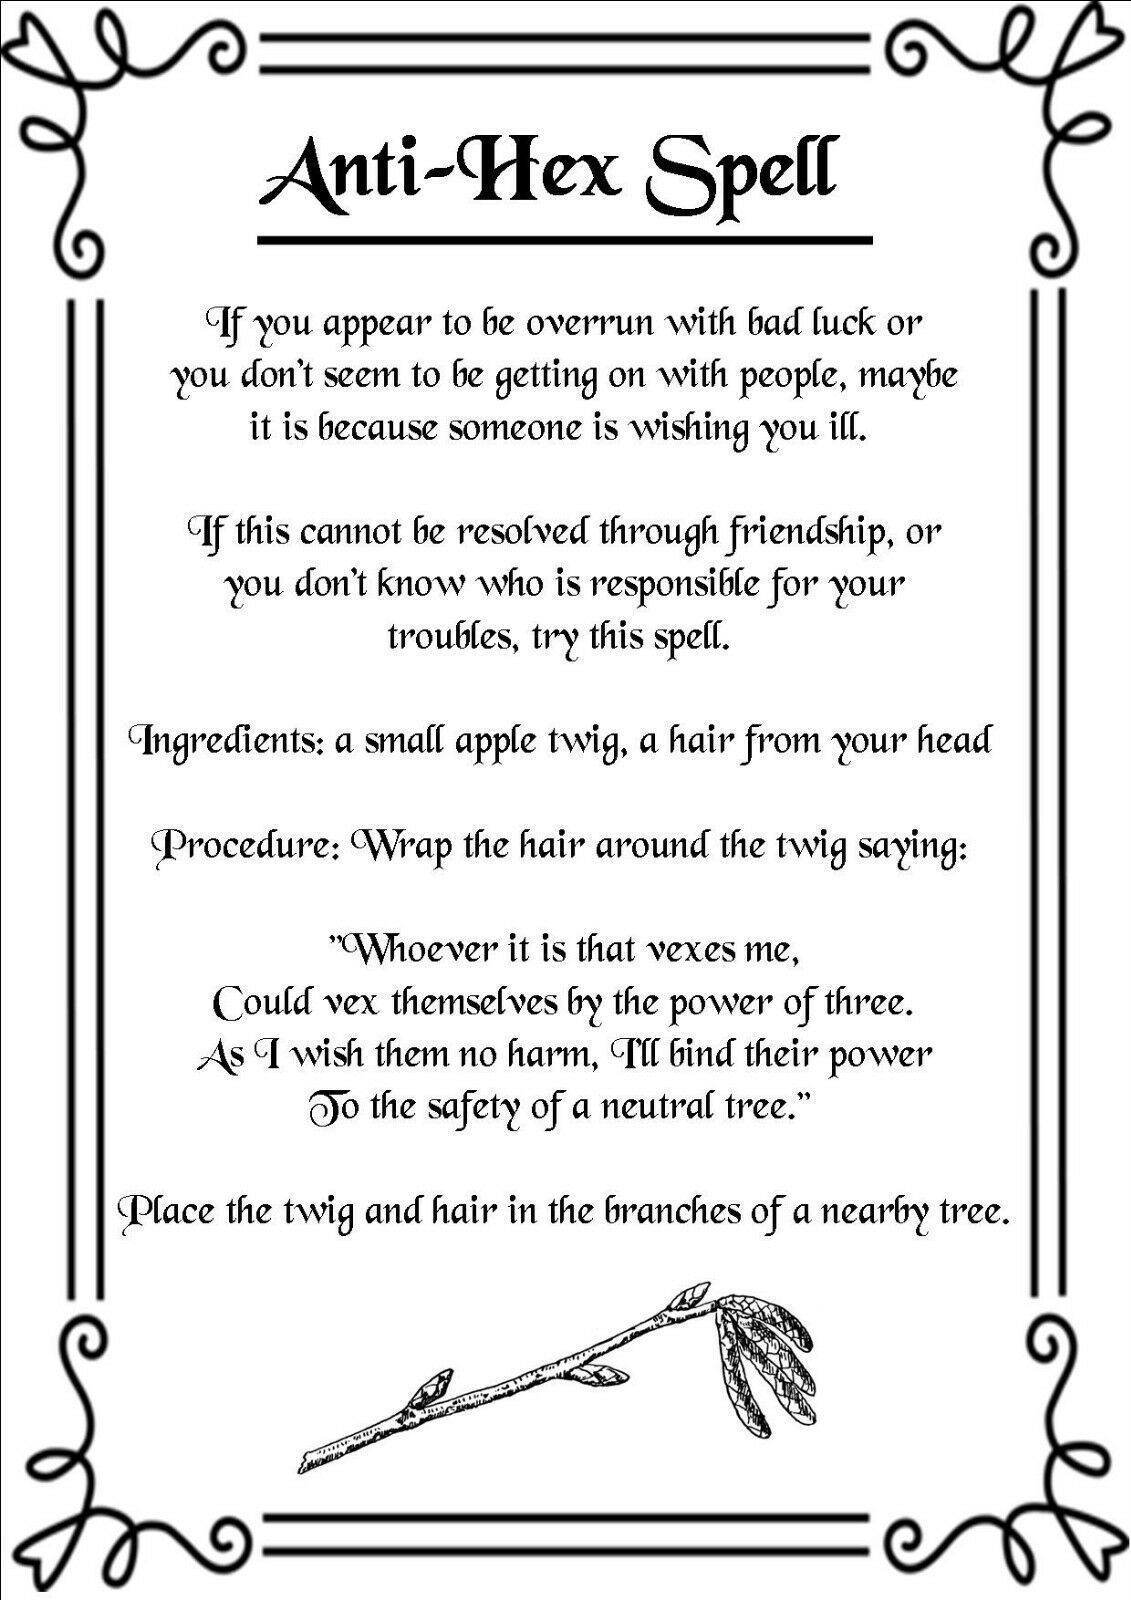 Details about Book Of Shadow - Over 800+ Pages Of Spells, Rituals, Herbs to PRINT. On CDROM #wiccanspells